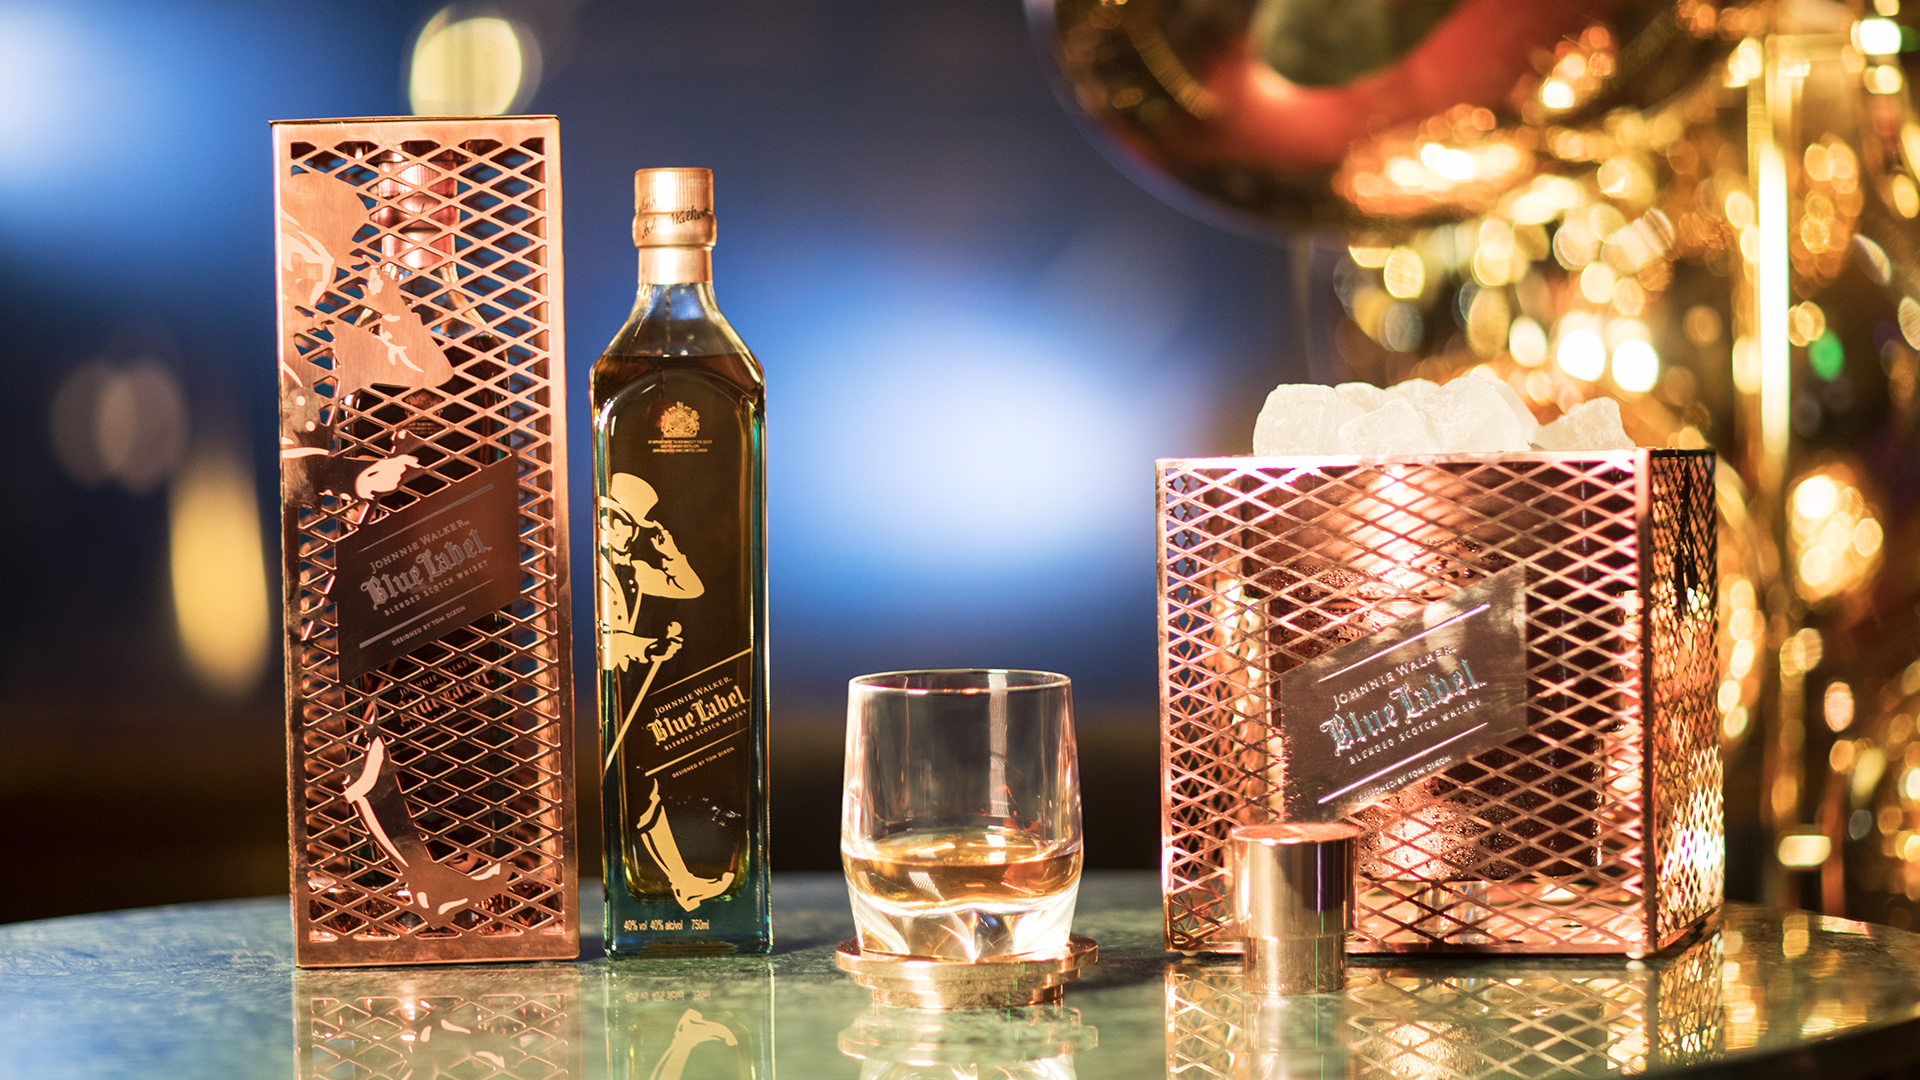 Cars Com Reviews >> Tom Dixon's Johnnie Walker Blue Label Capsule Series is a refined homage to whisky